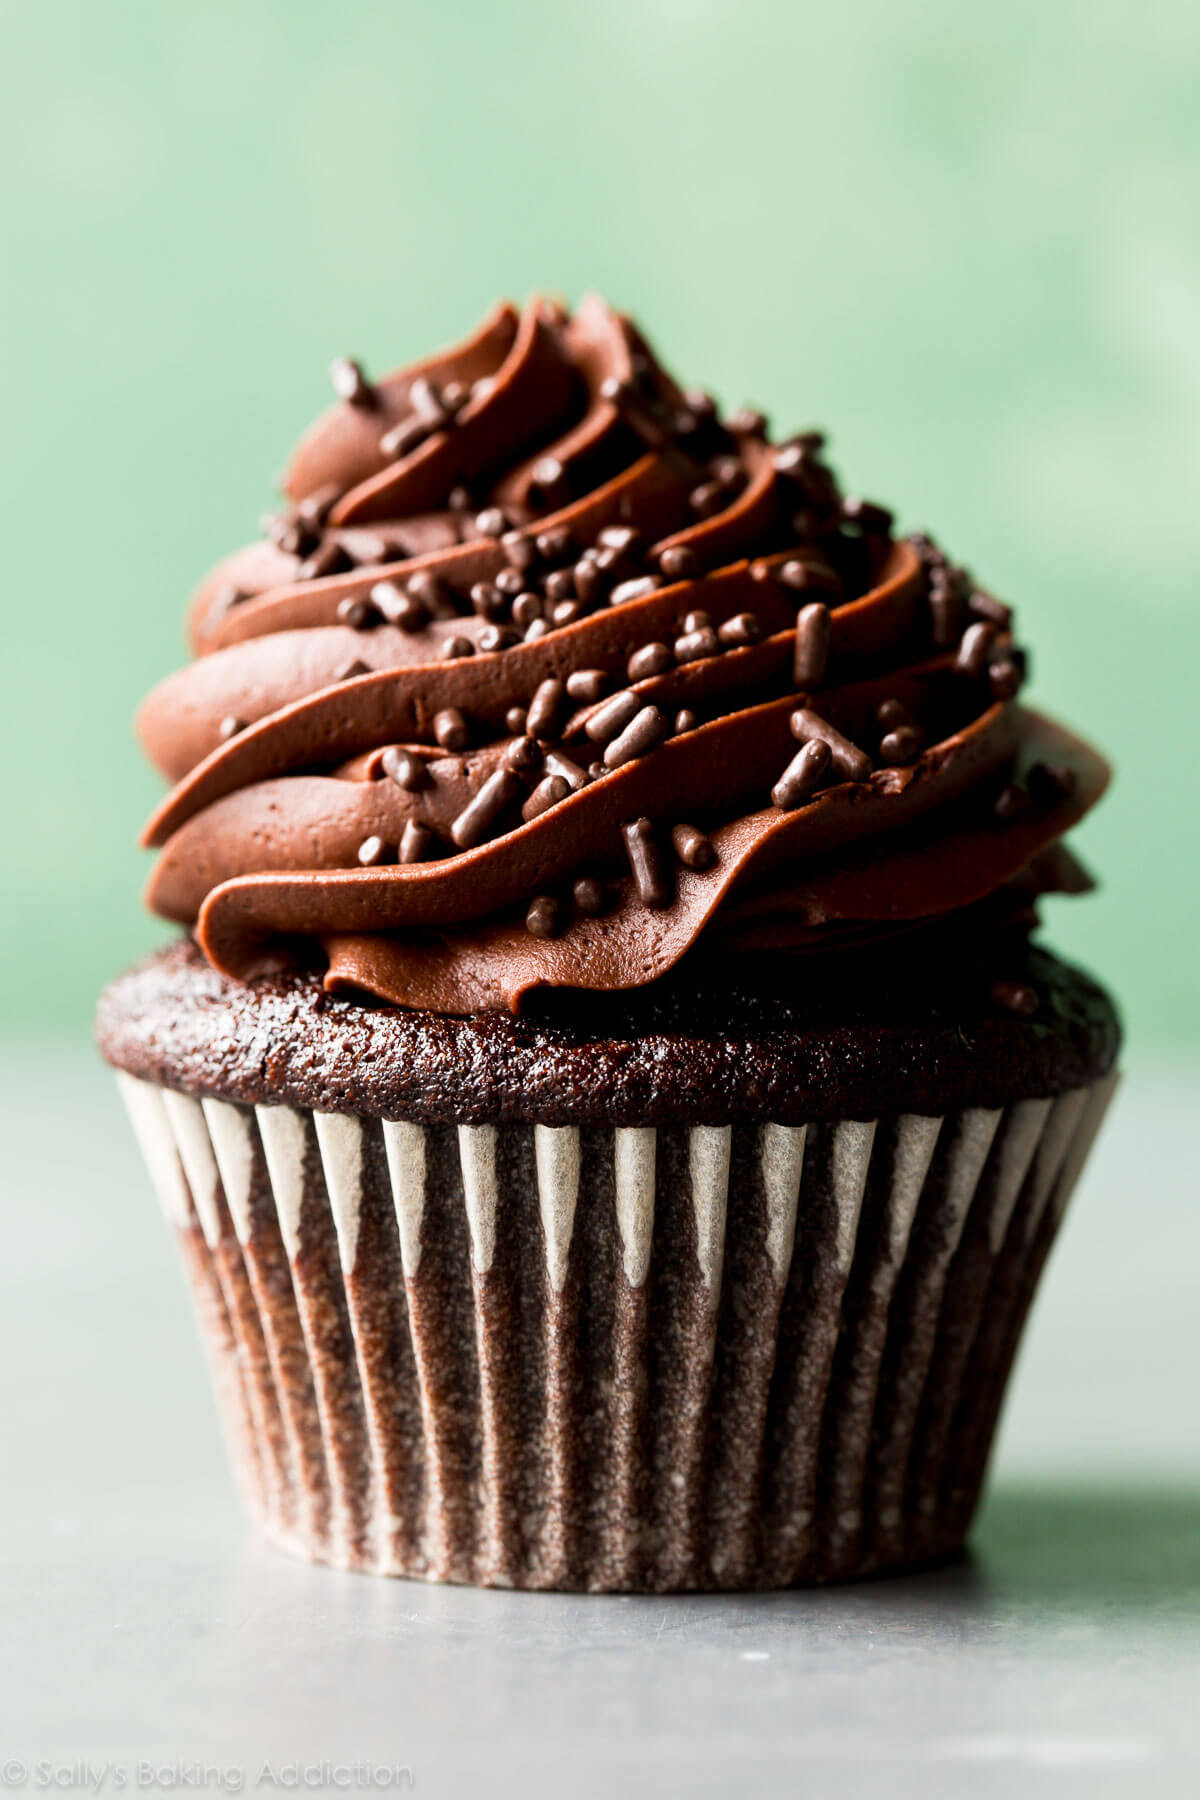 Best Chocolate Cupcakes  Classic Chocolate Cupcakes with Vanilla Frosting Sallys